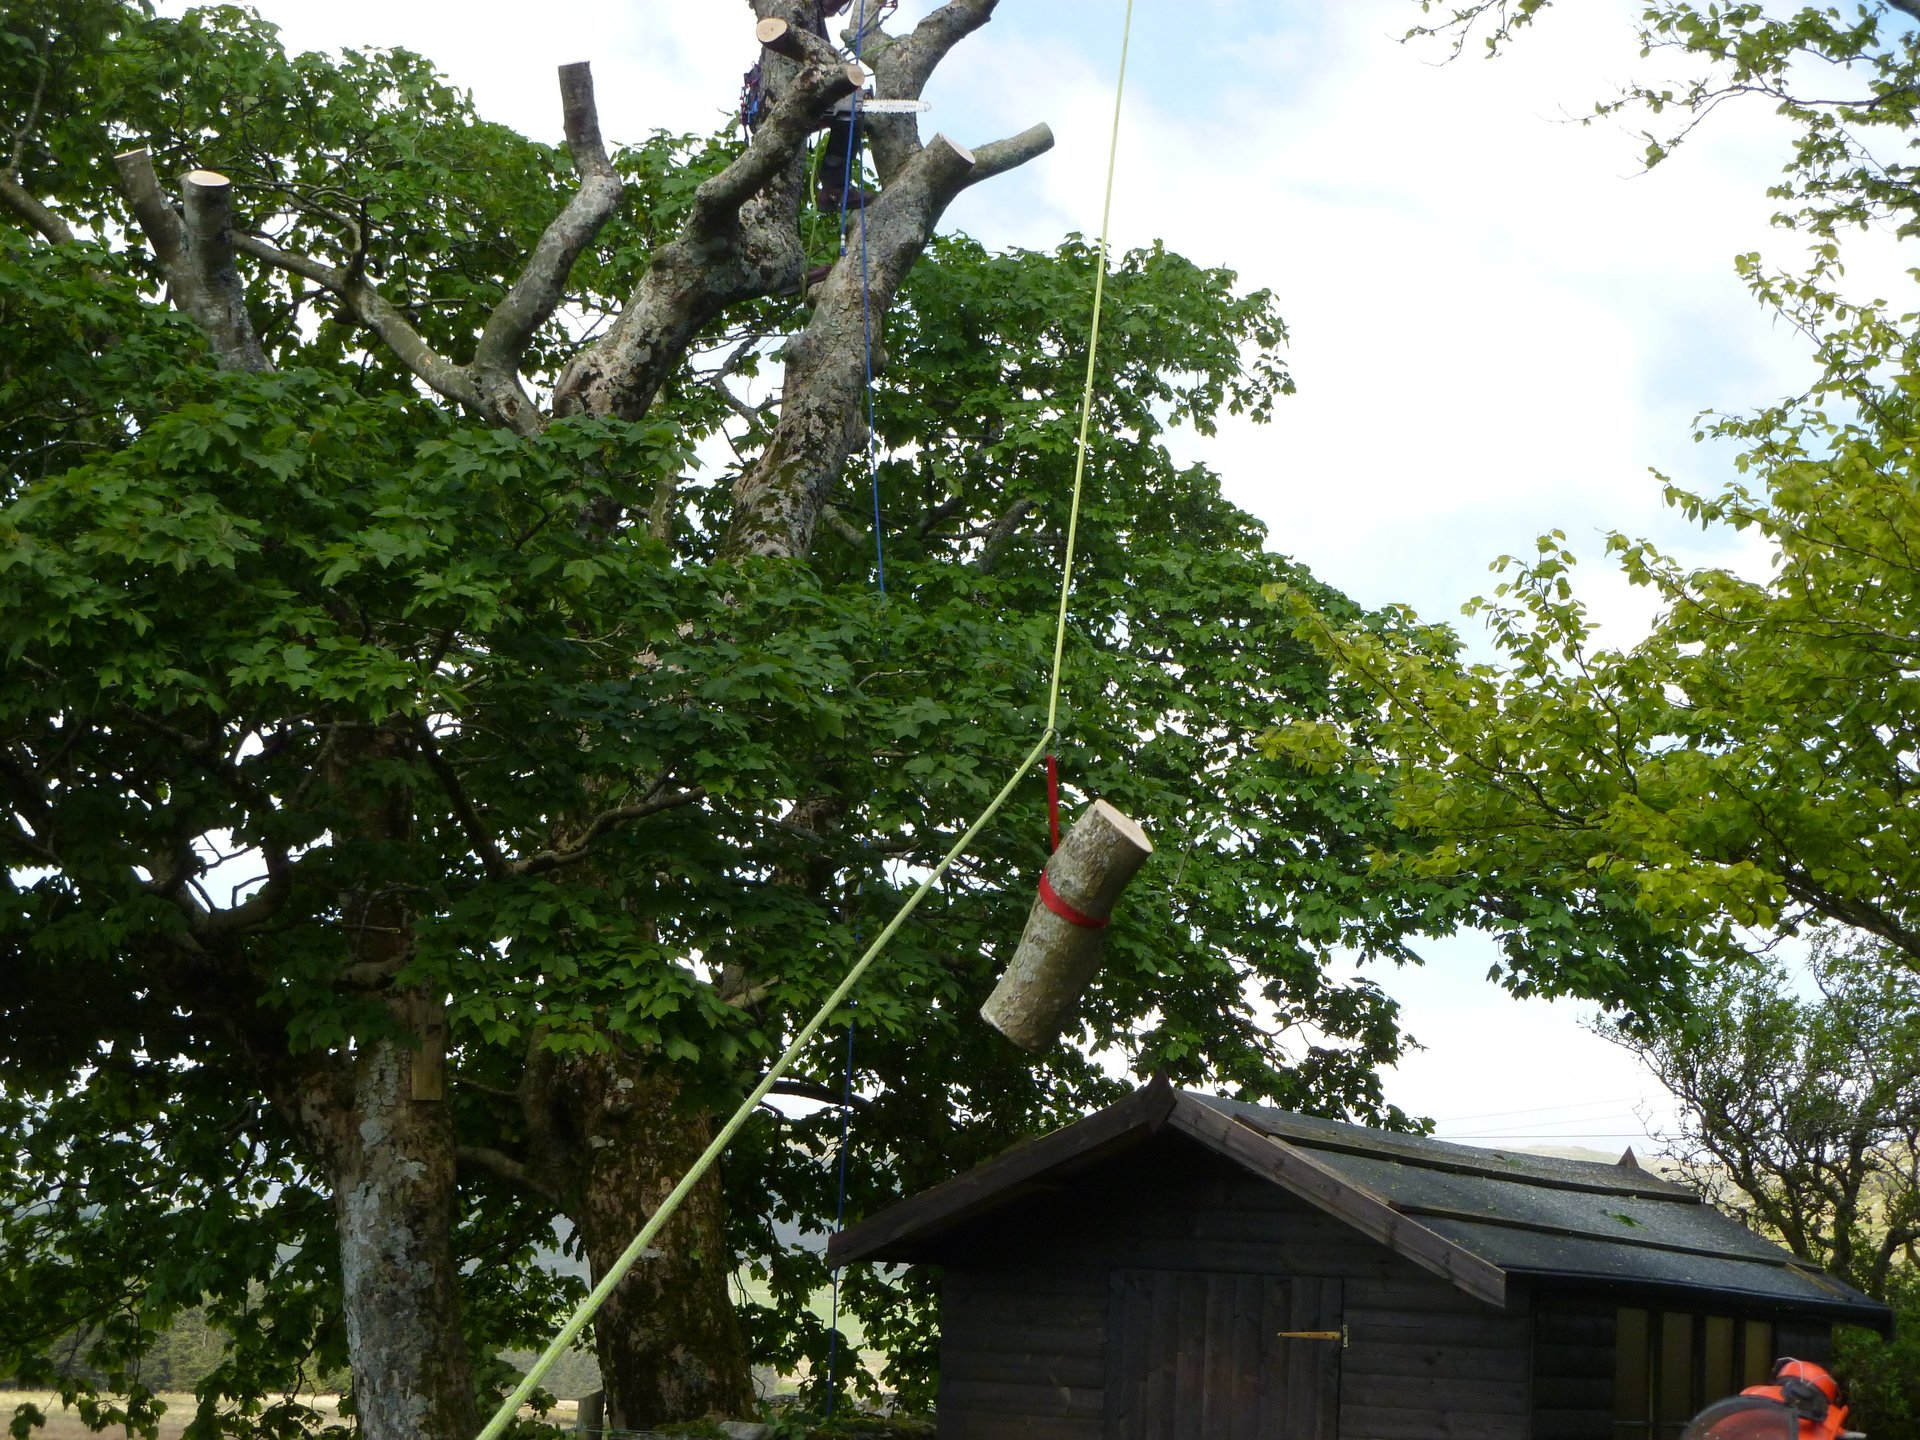 Precision tree work to avoid damaging the shed.